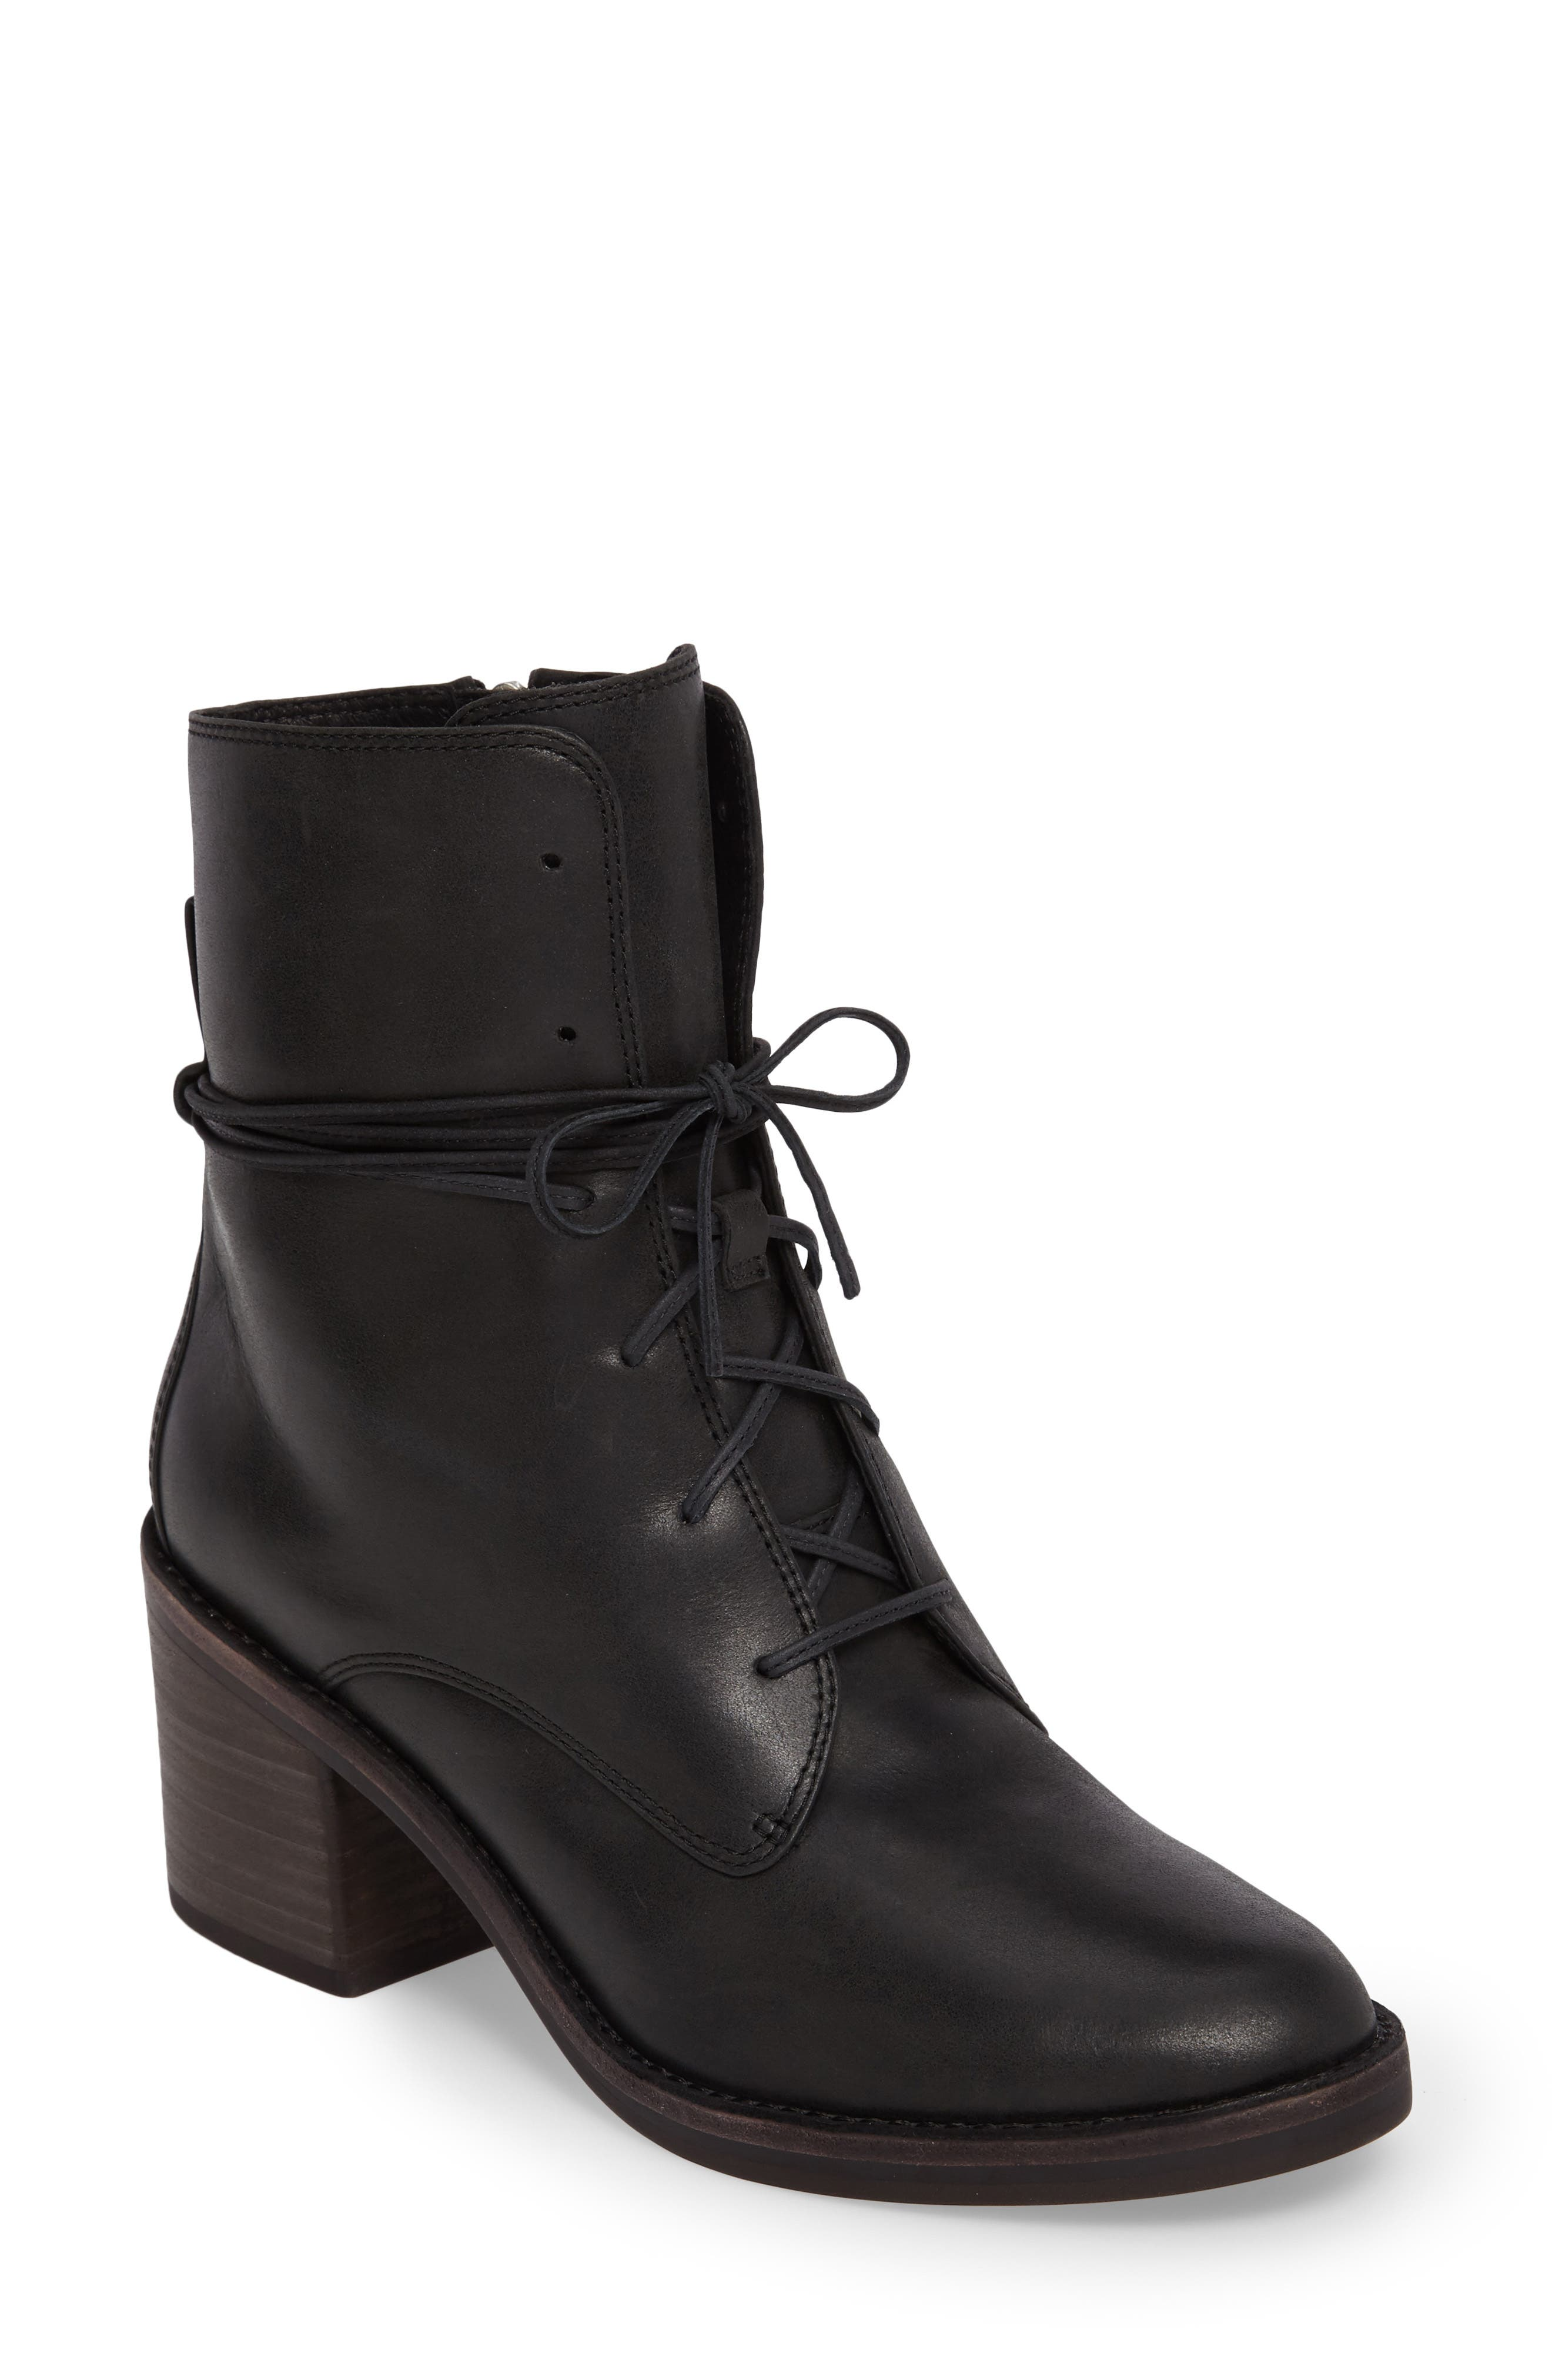 Alternate Image 1 Selected - UGG® Oriana Lace-Up Boot (Women)